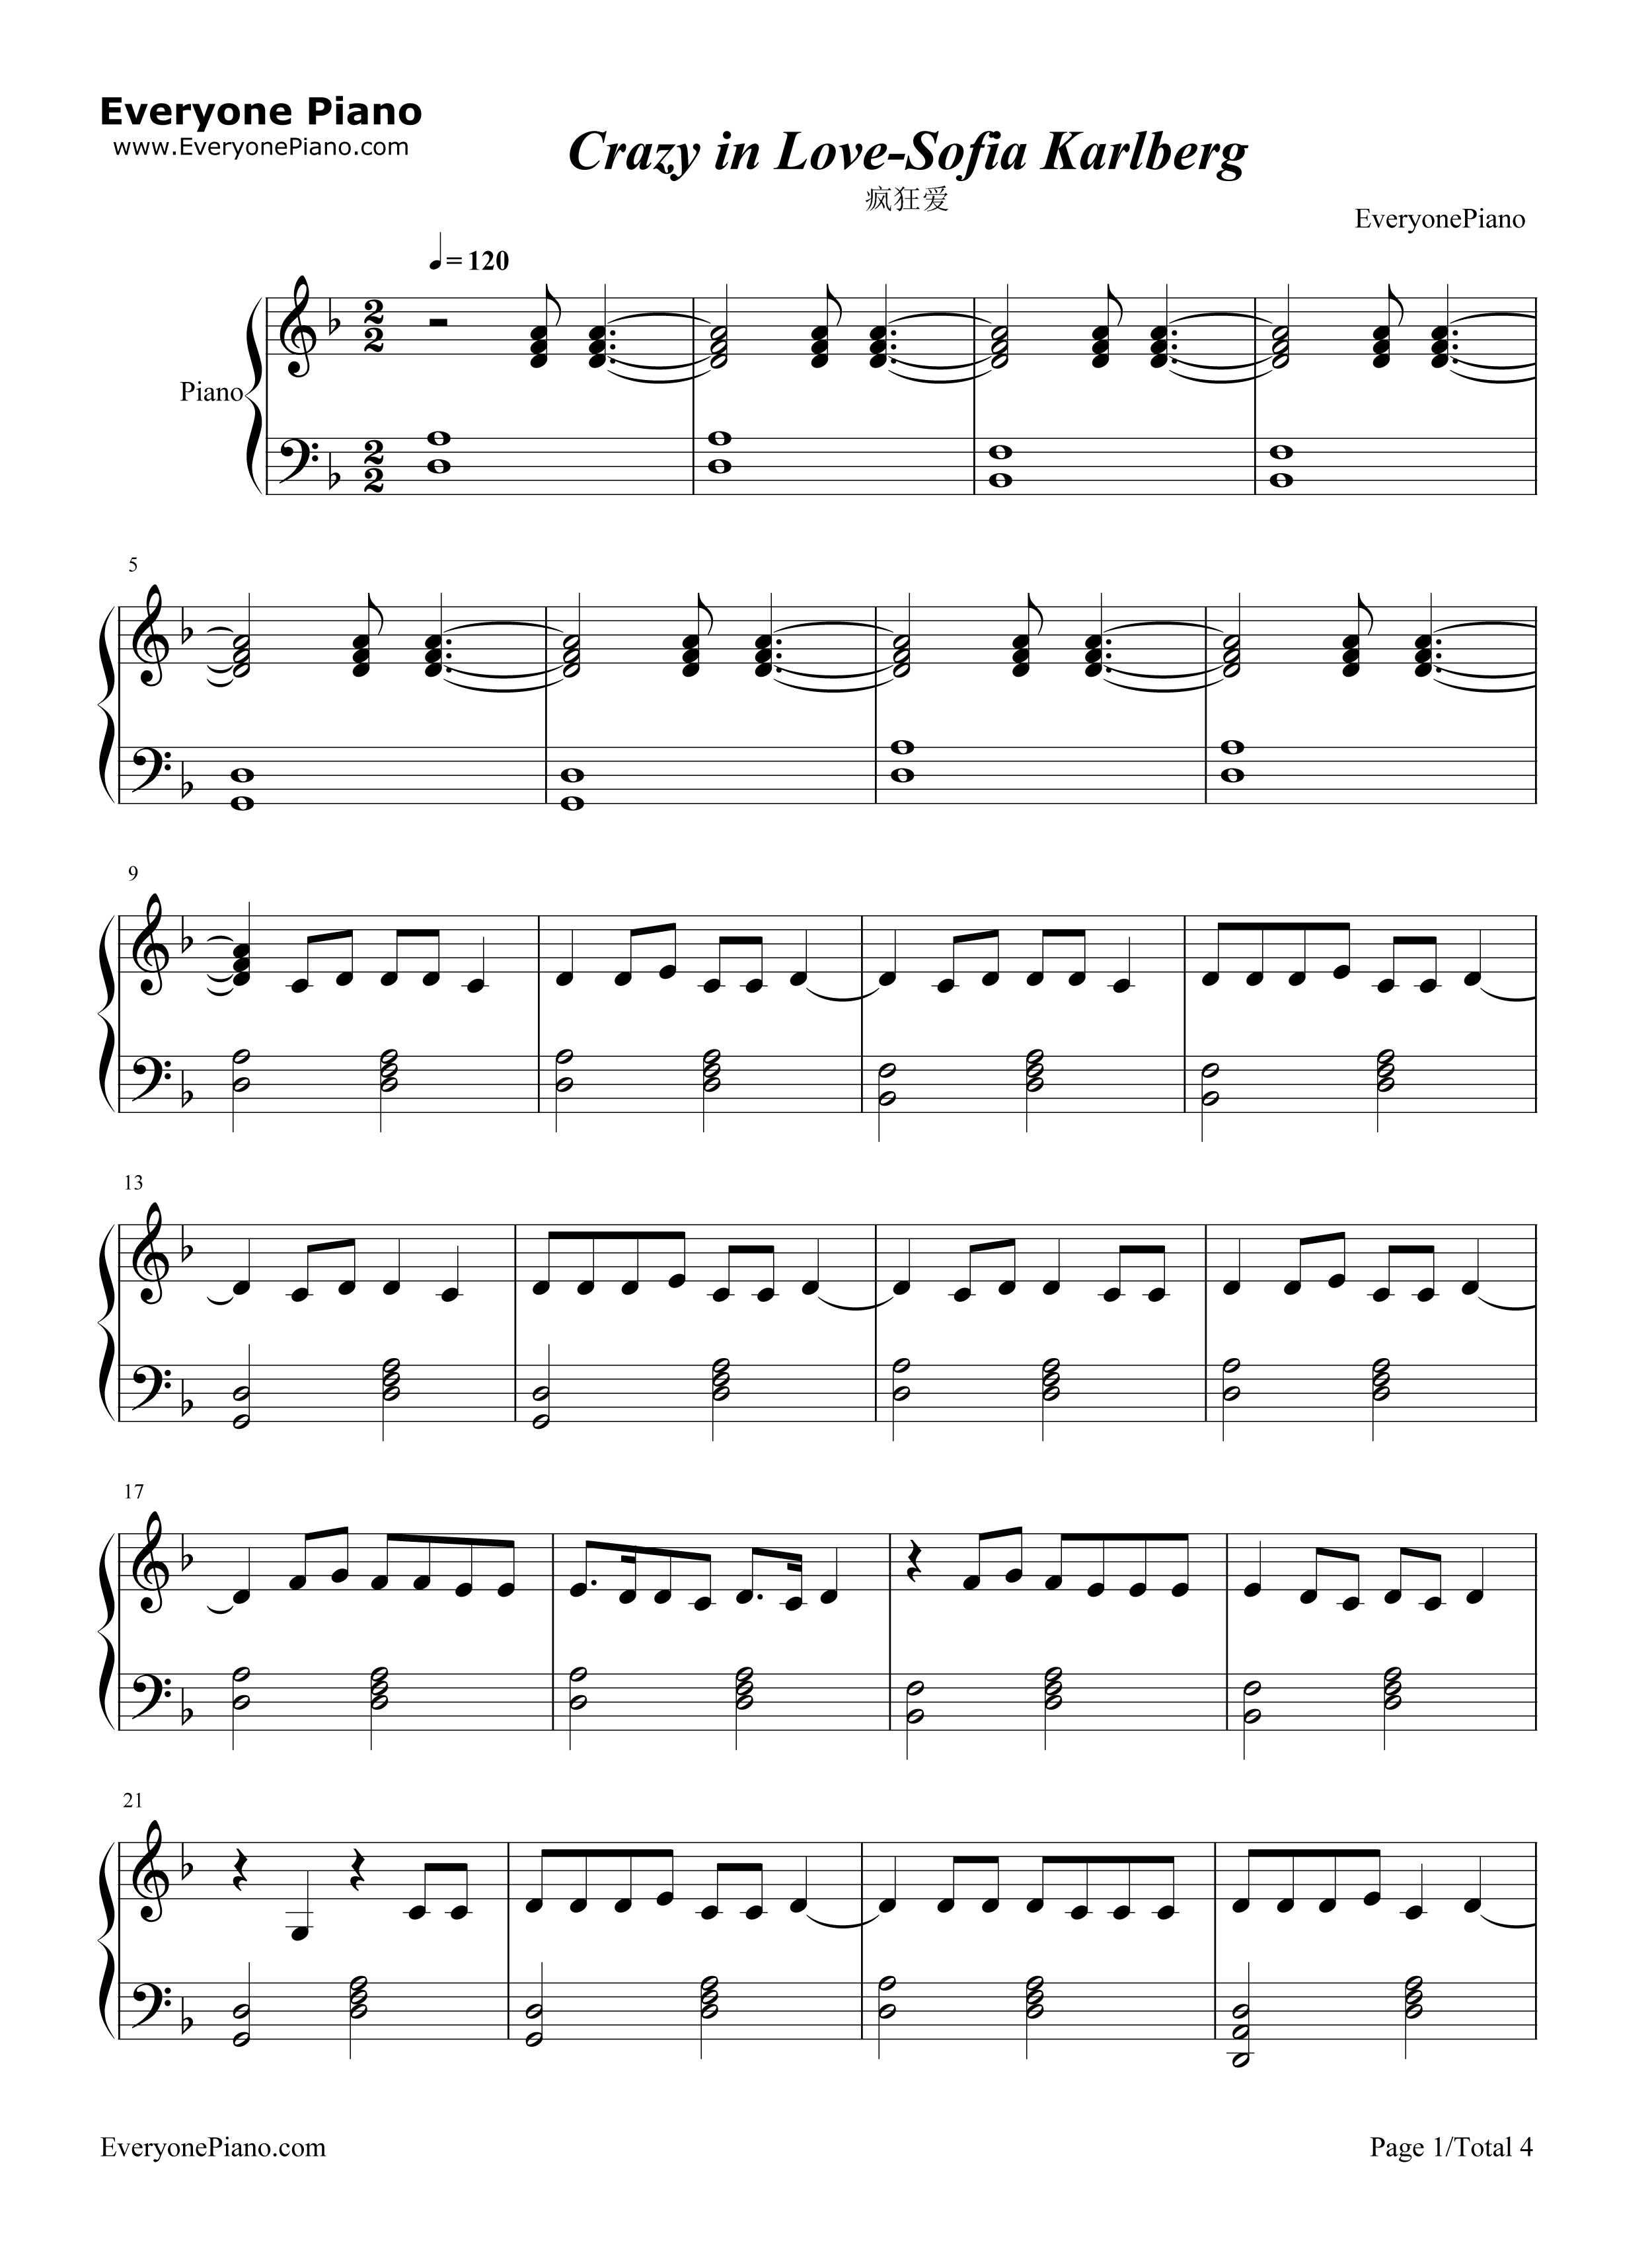 Sofia karlberg stave preview 1 free piano sheet music amp piano chords